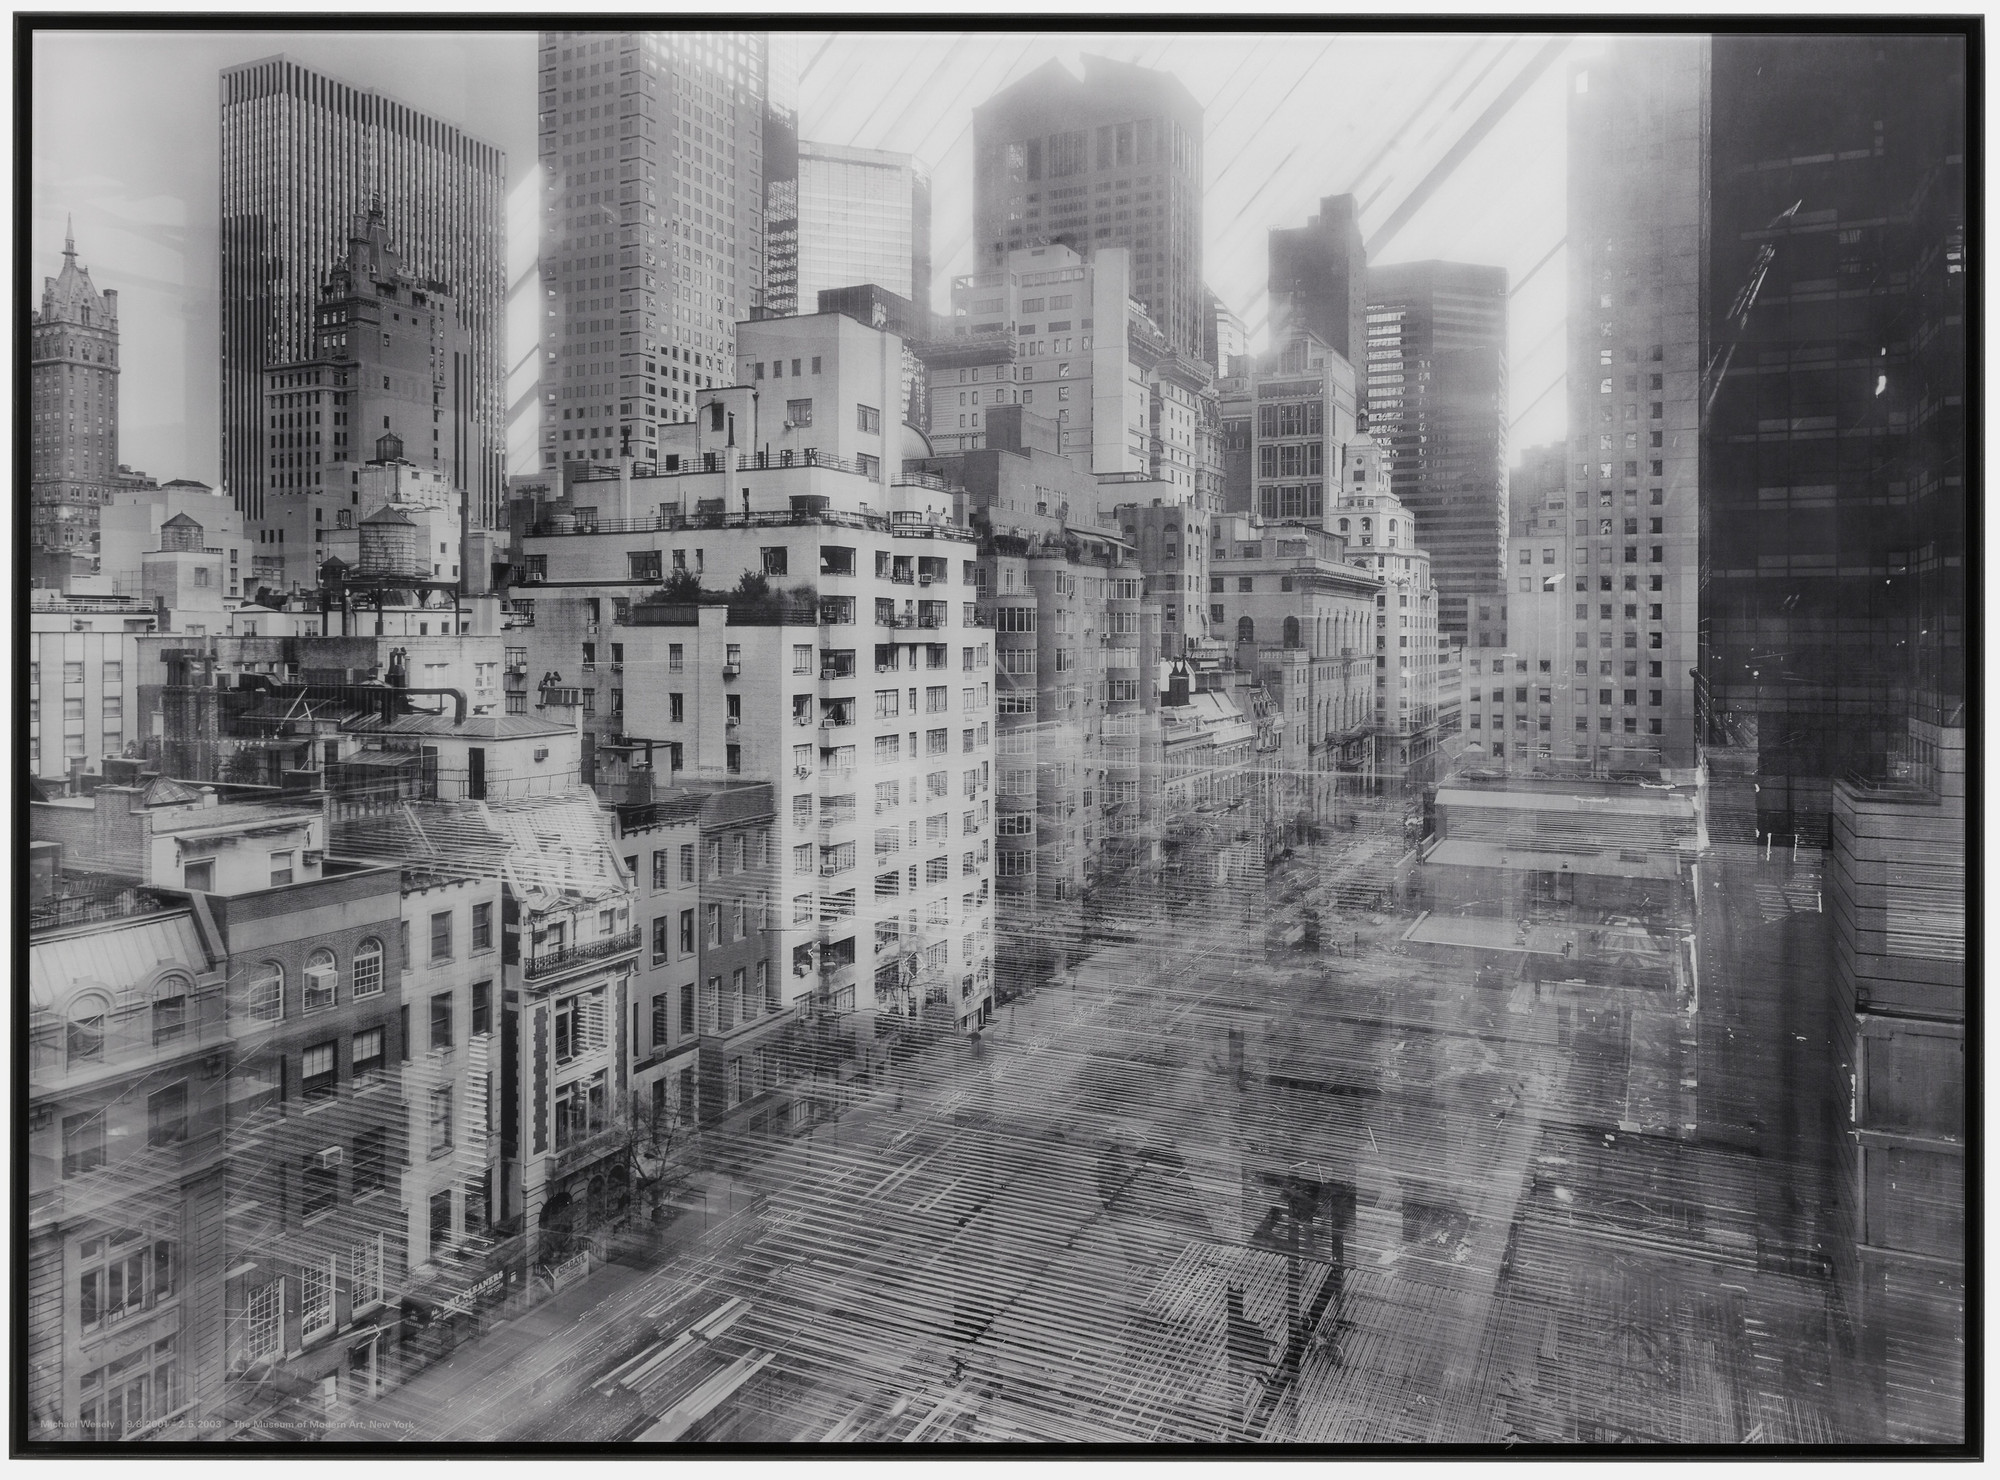 Michael Wesely. 9 August 2001 - 2 May 2003 The Museum of Modern Art, New York. 2001-03